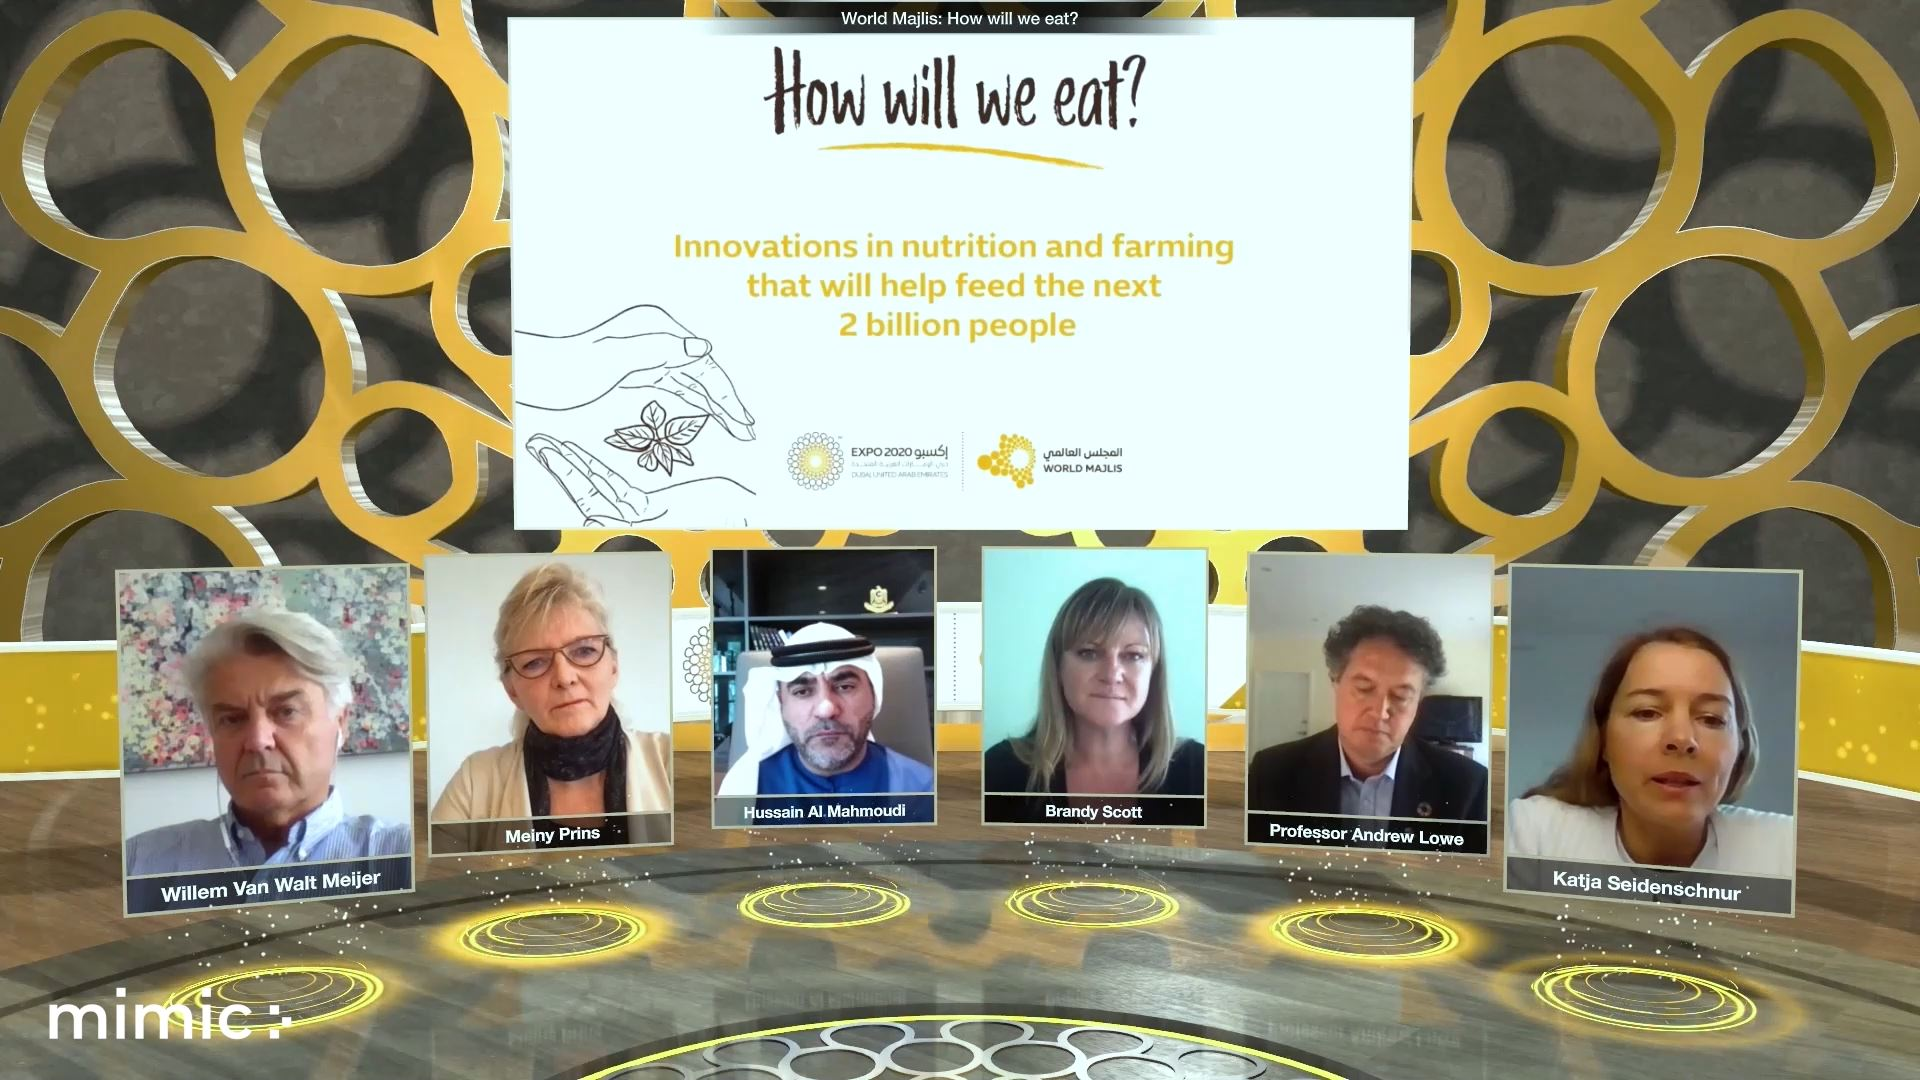 expo 2020 food agriculture livelihoods virtual event panel discussion with screen